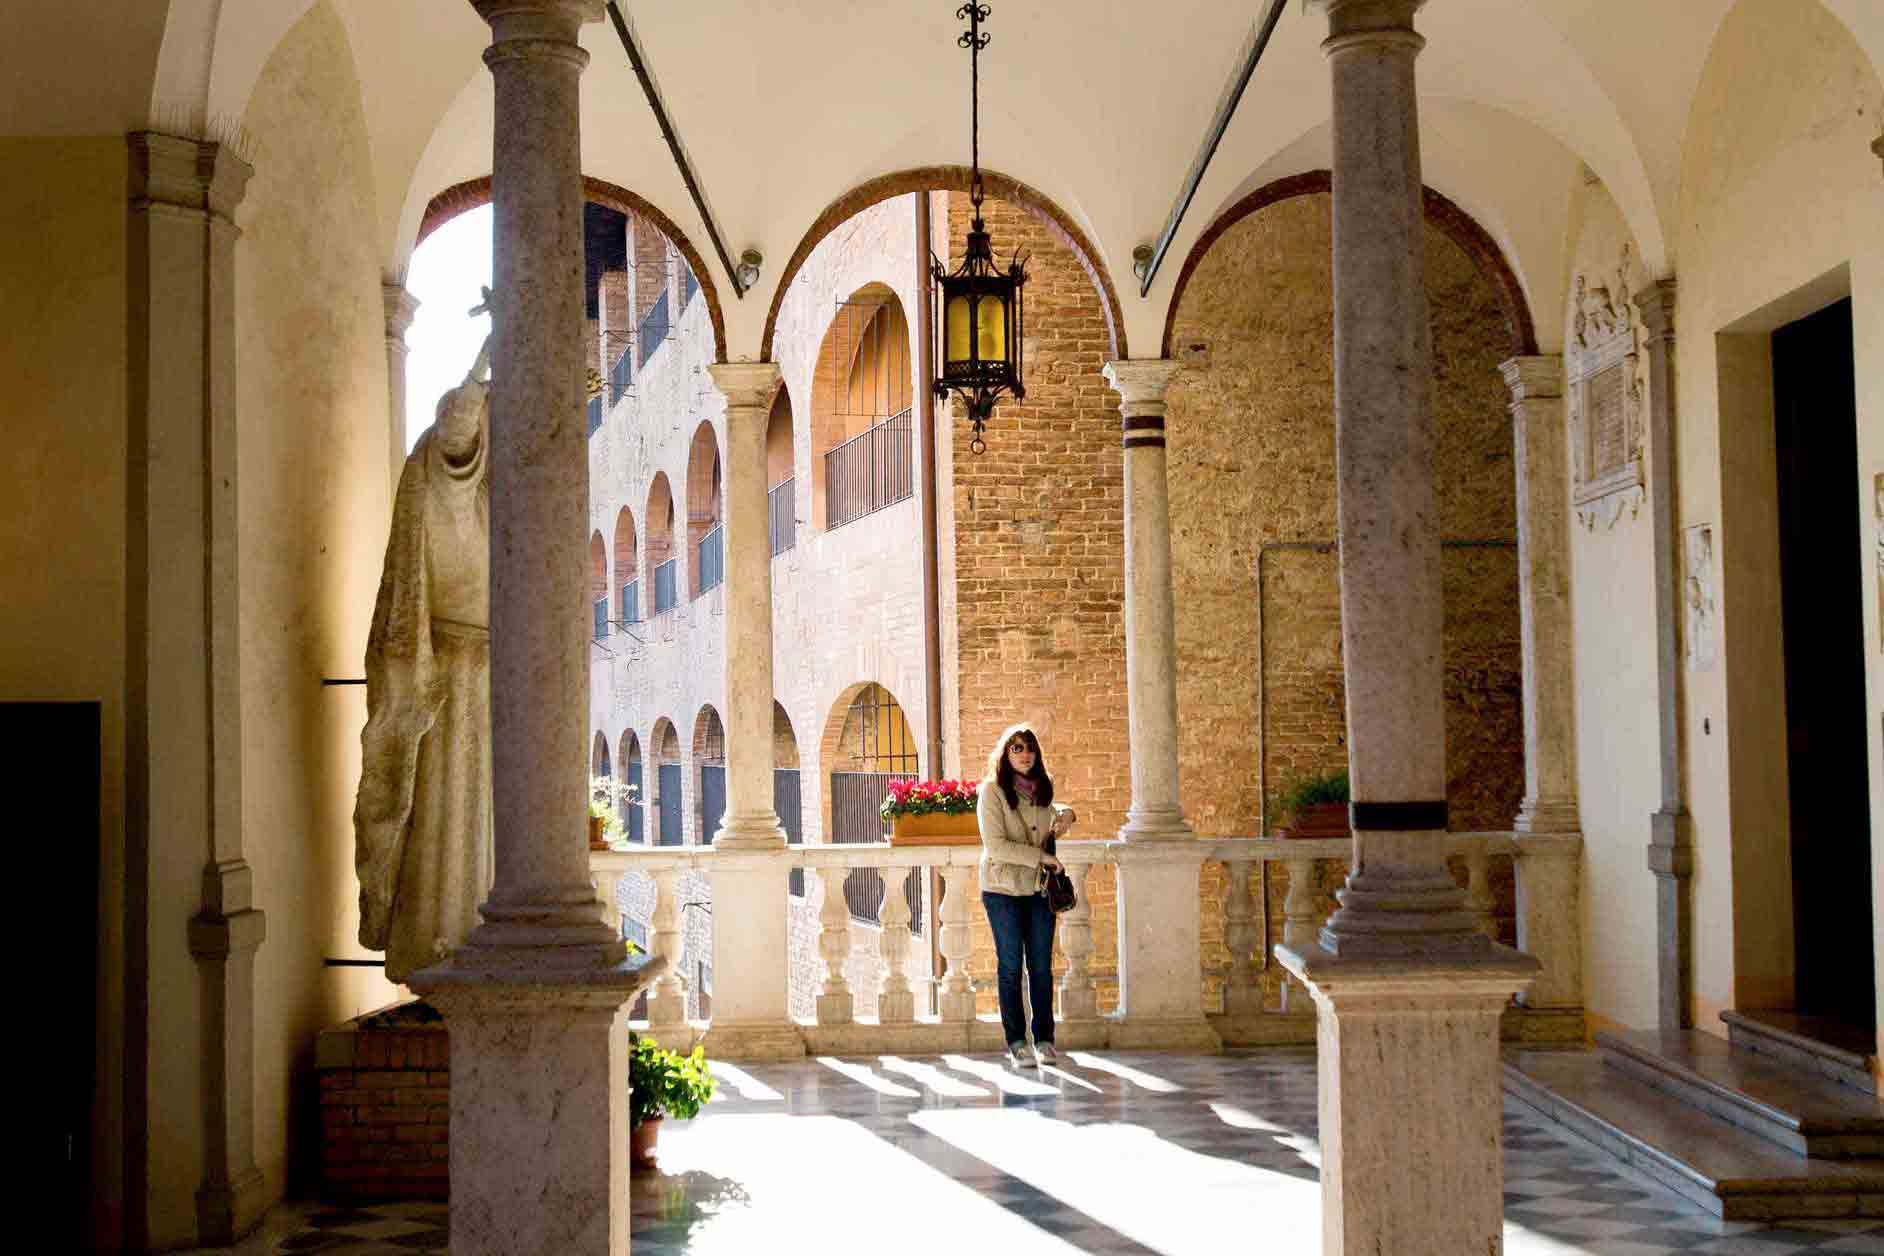 University employee is seen in a courtyard at the hour of Saint Catherine in Siena, Italy